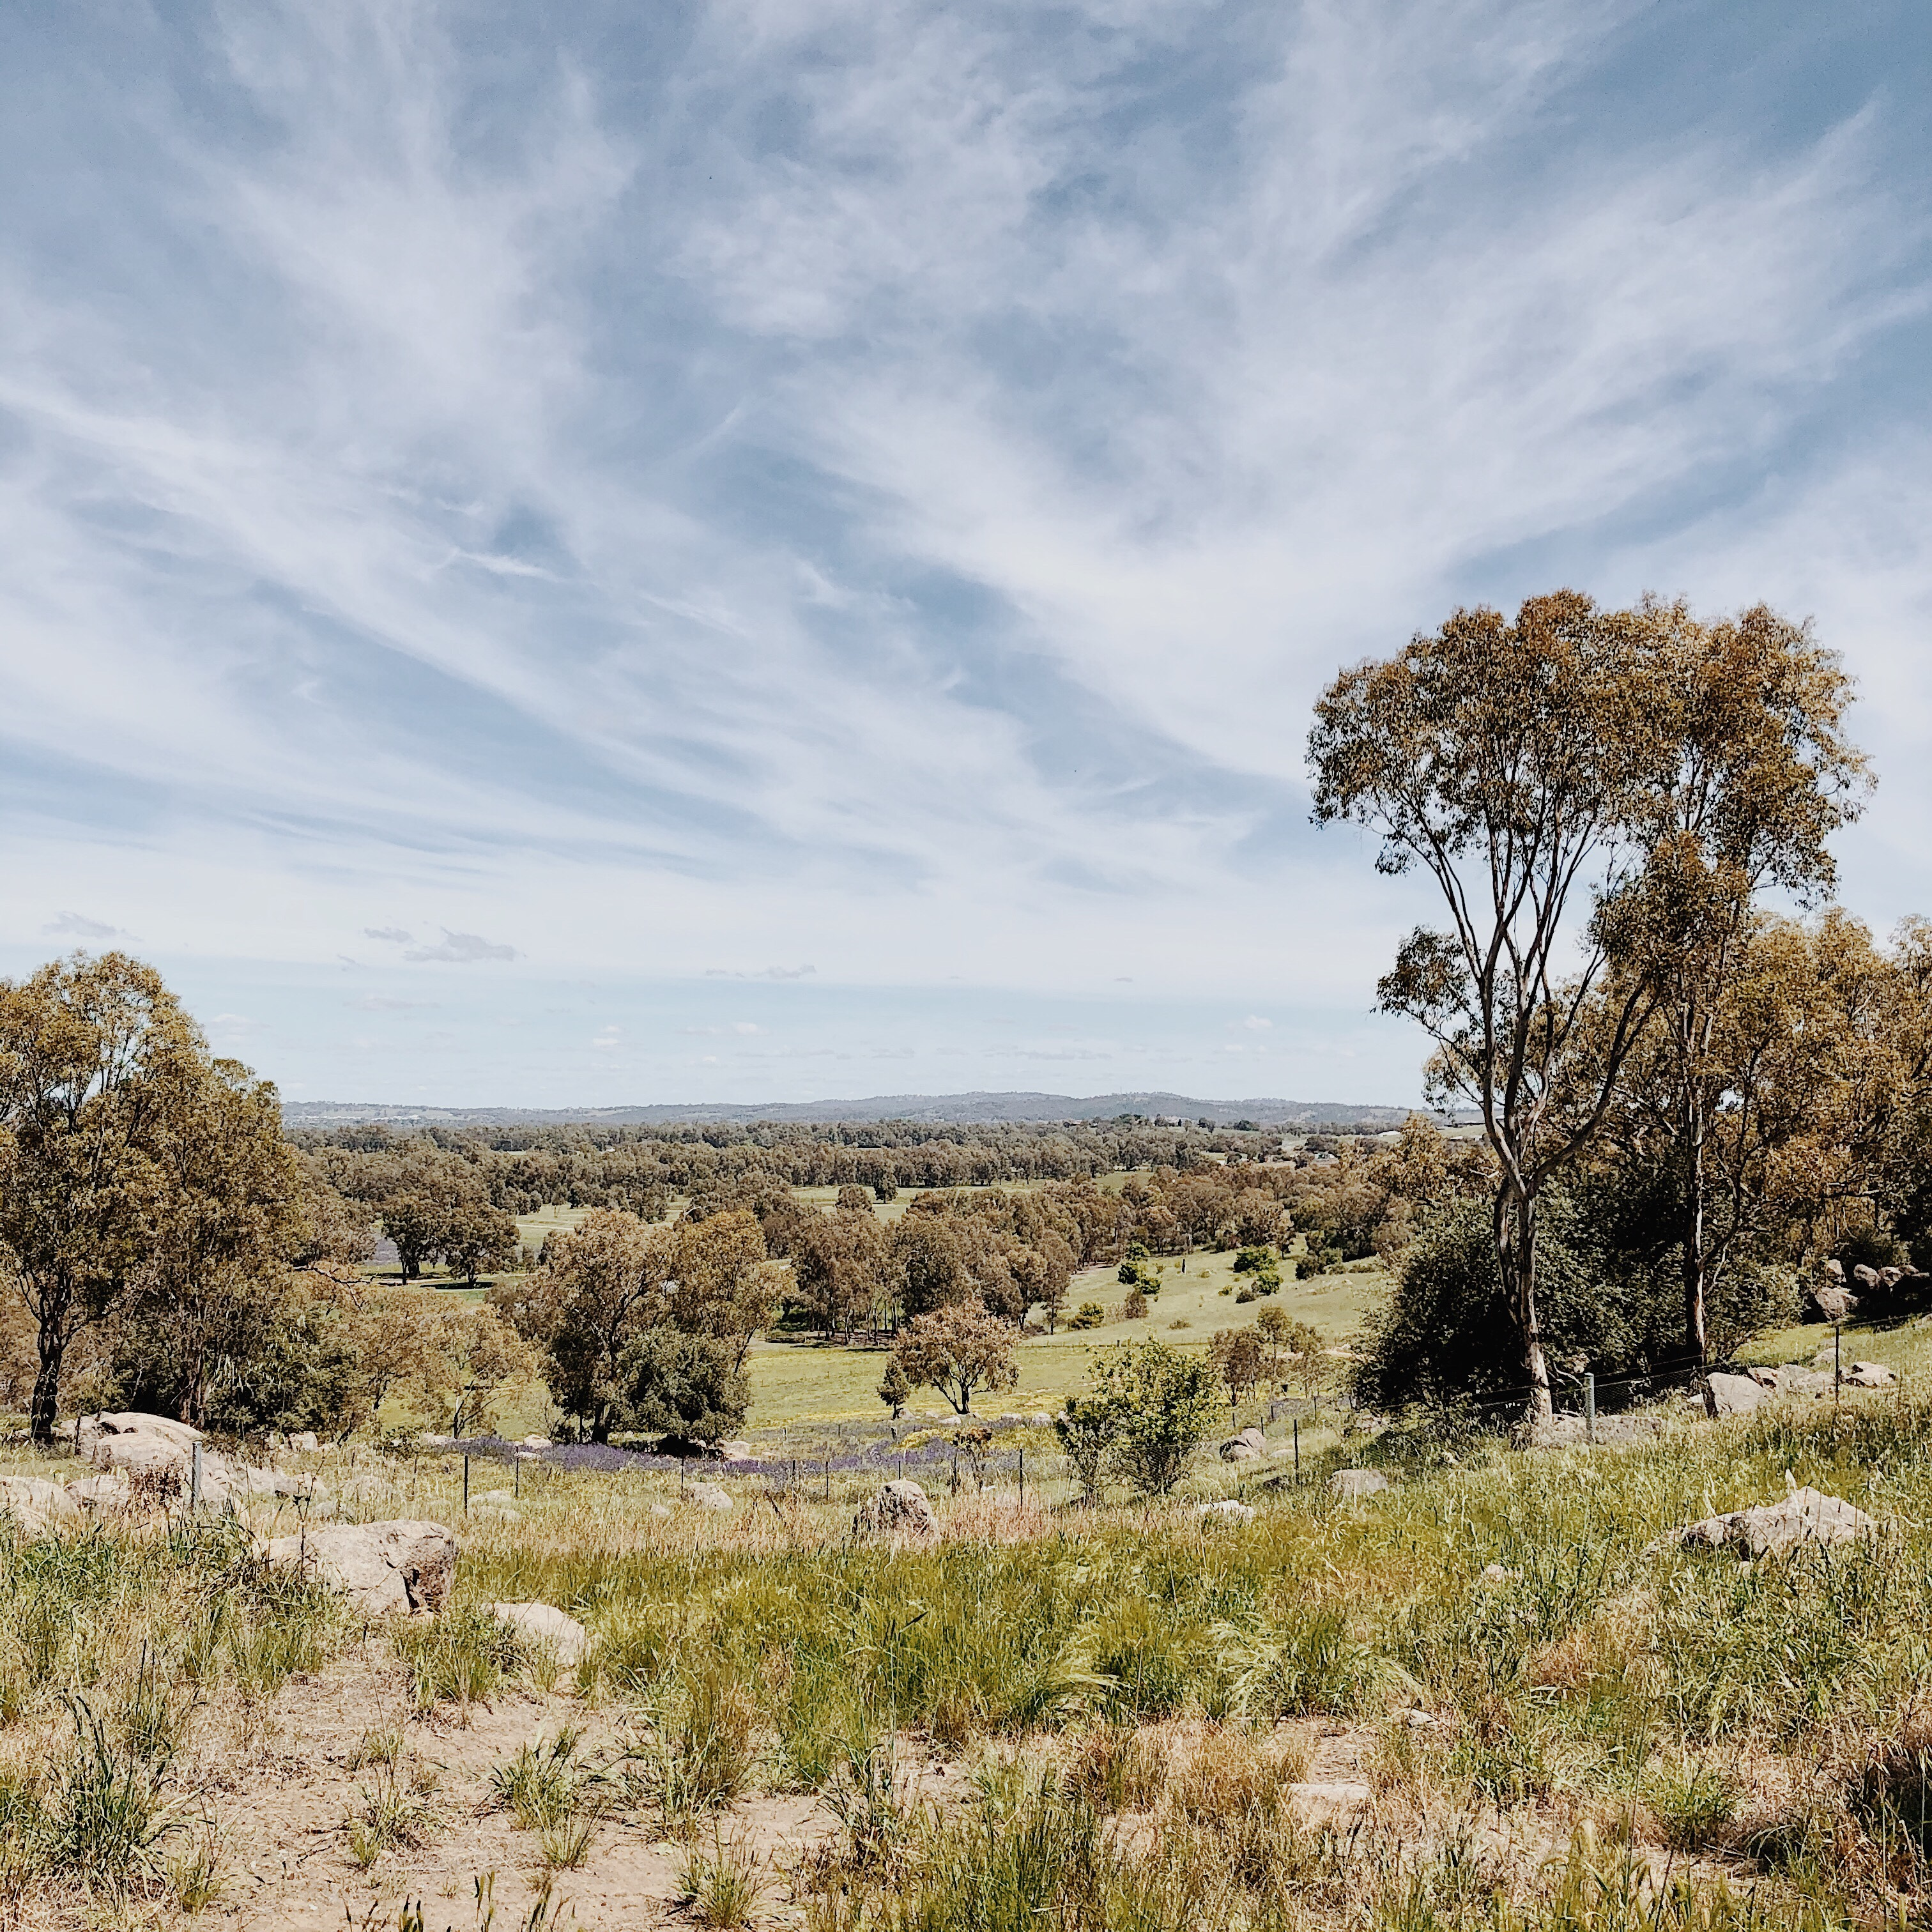 View from Explorer Park, Wagga Wagga, New South Wales, Australia.